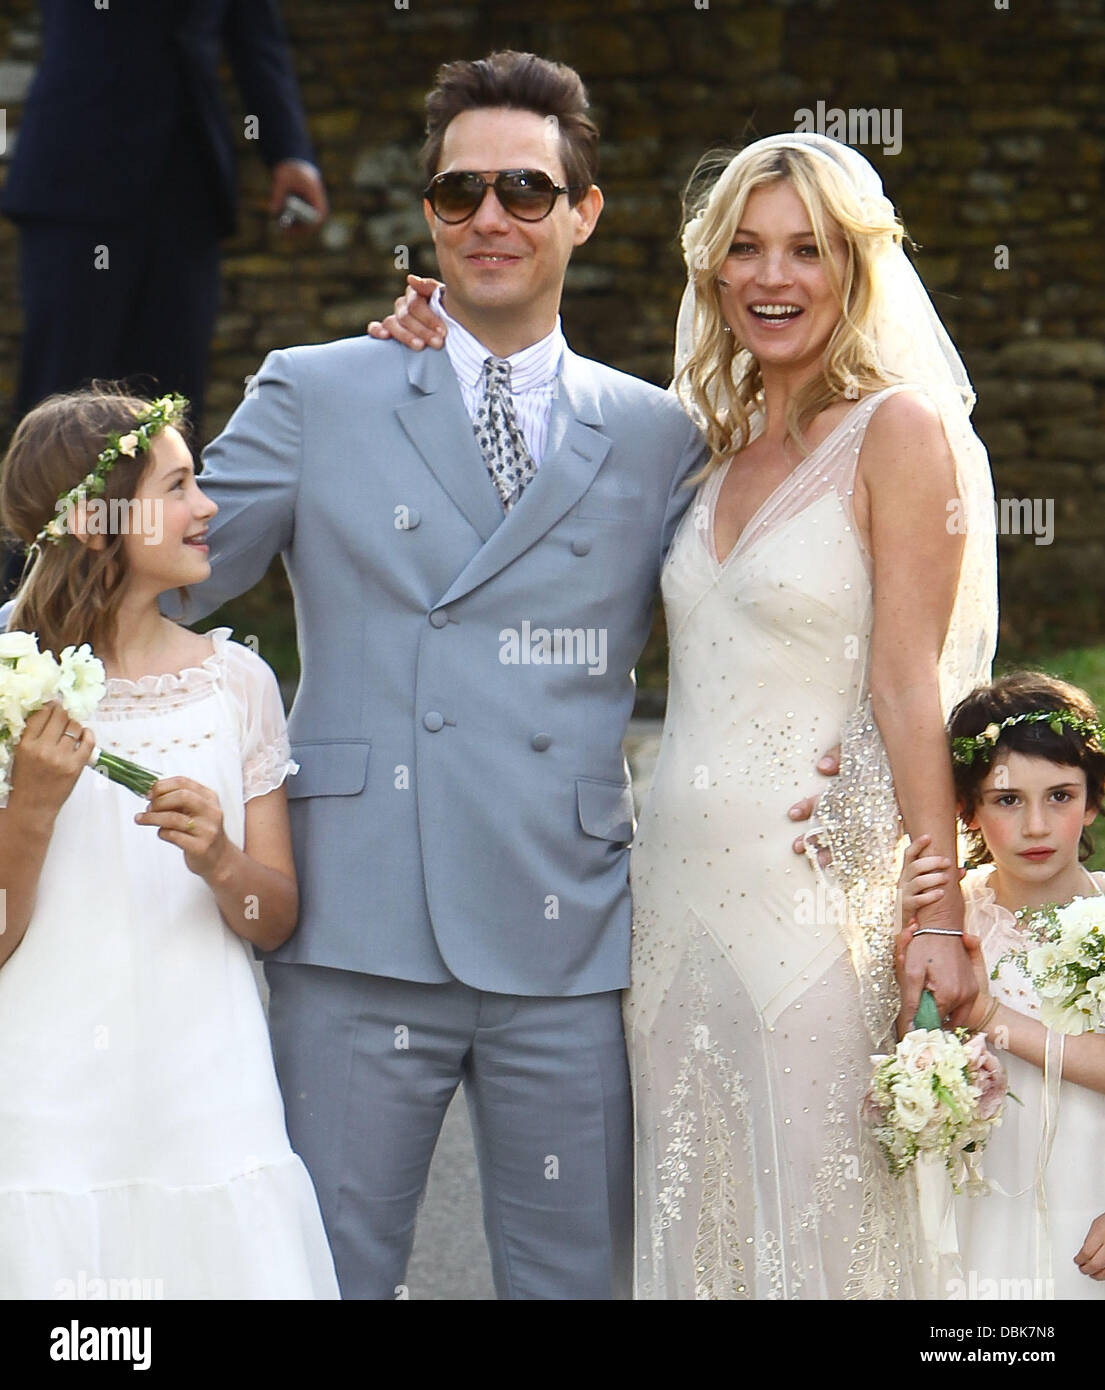 The marriage ceremony of Kate Moss was held in the small old church of St. Margaret 07/02/2011 8